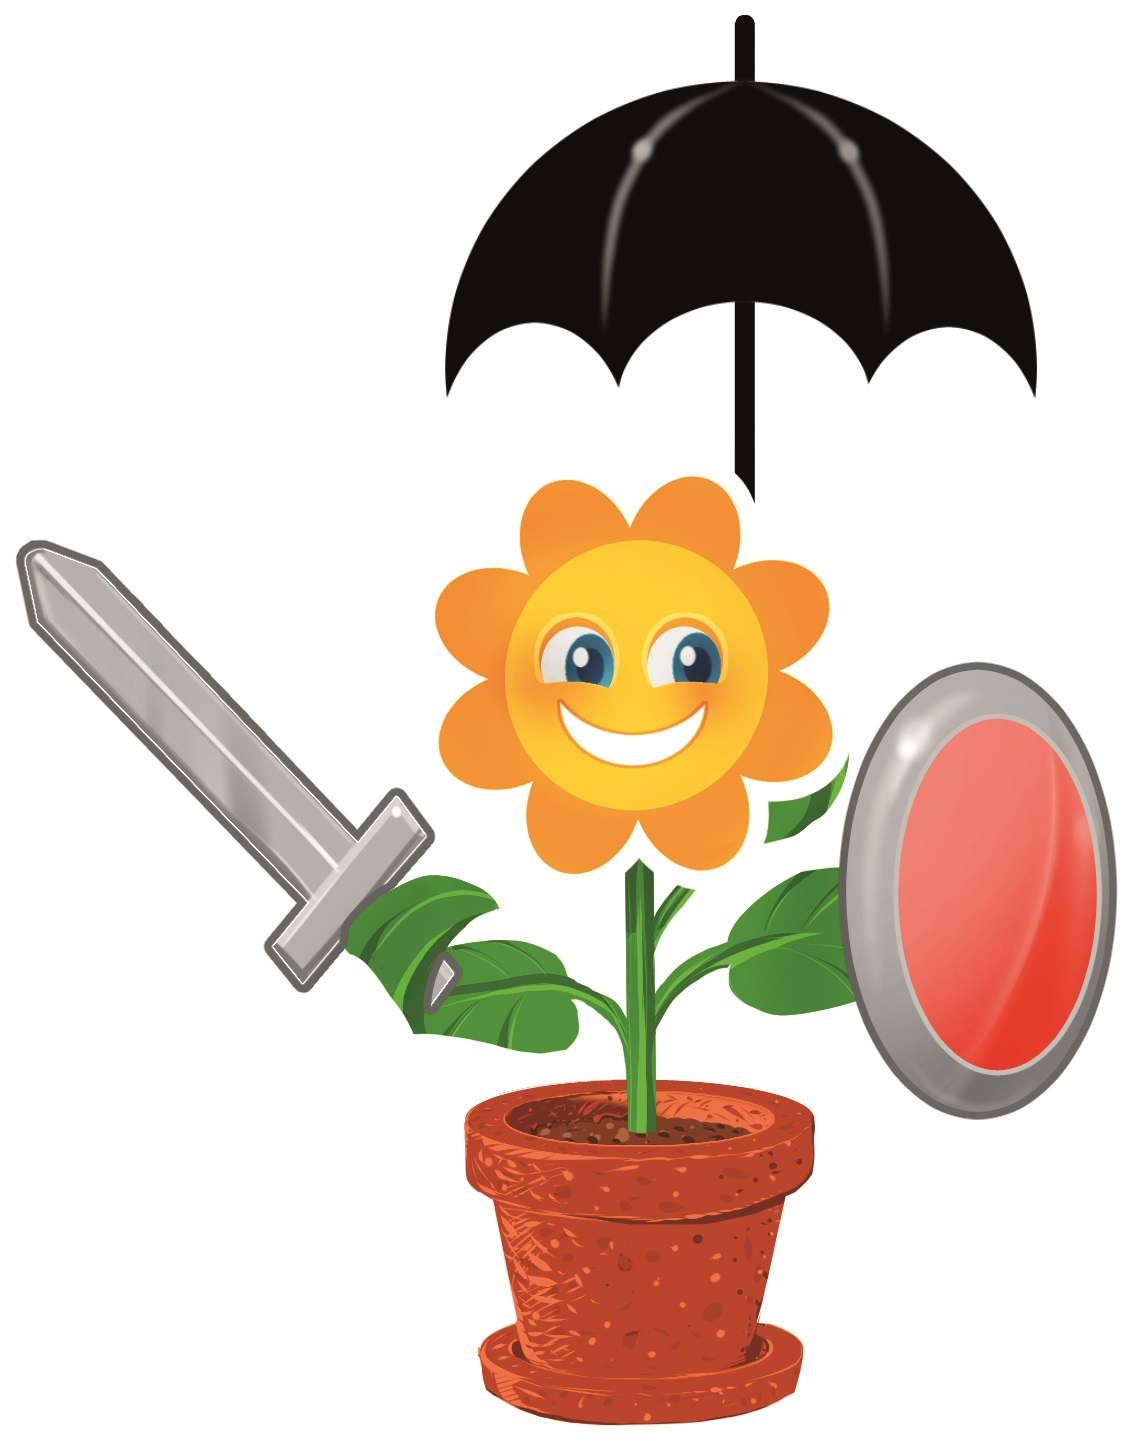 1.) Every plant in nature has protective mechanisms that protect its cells from attack by pathogens.